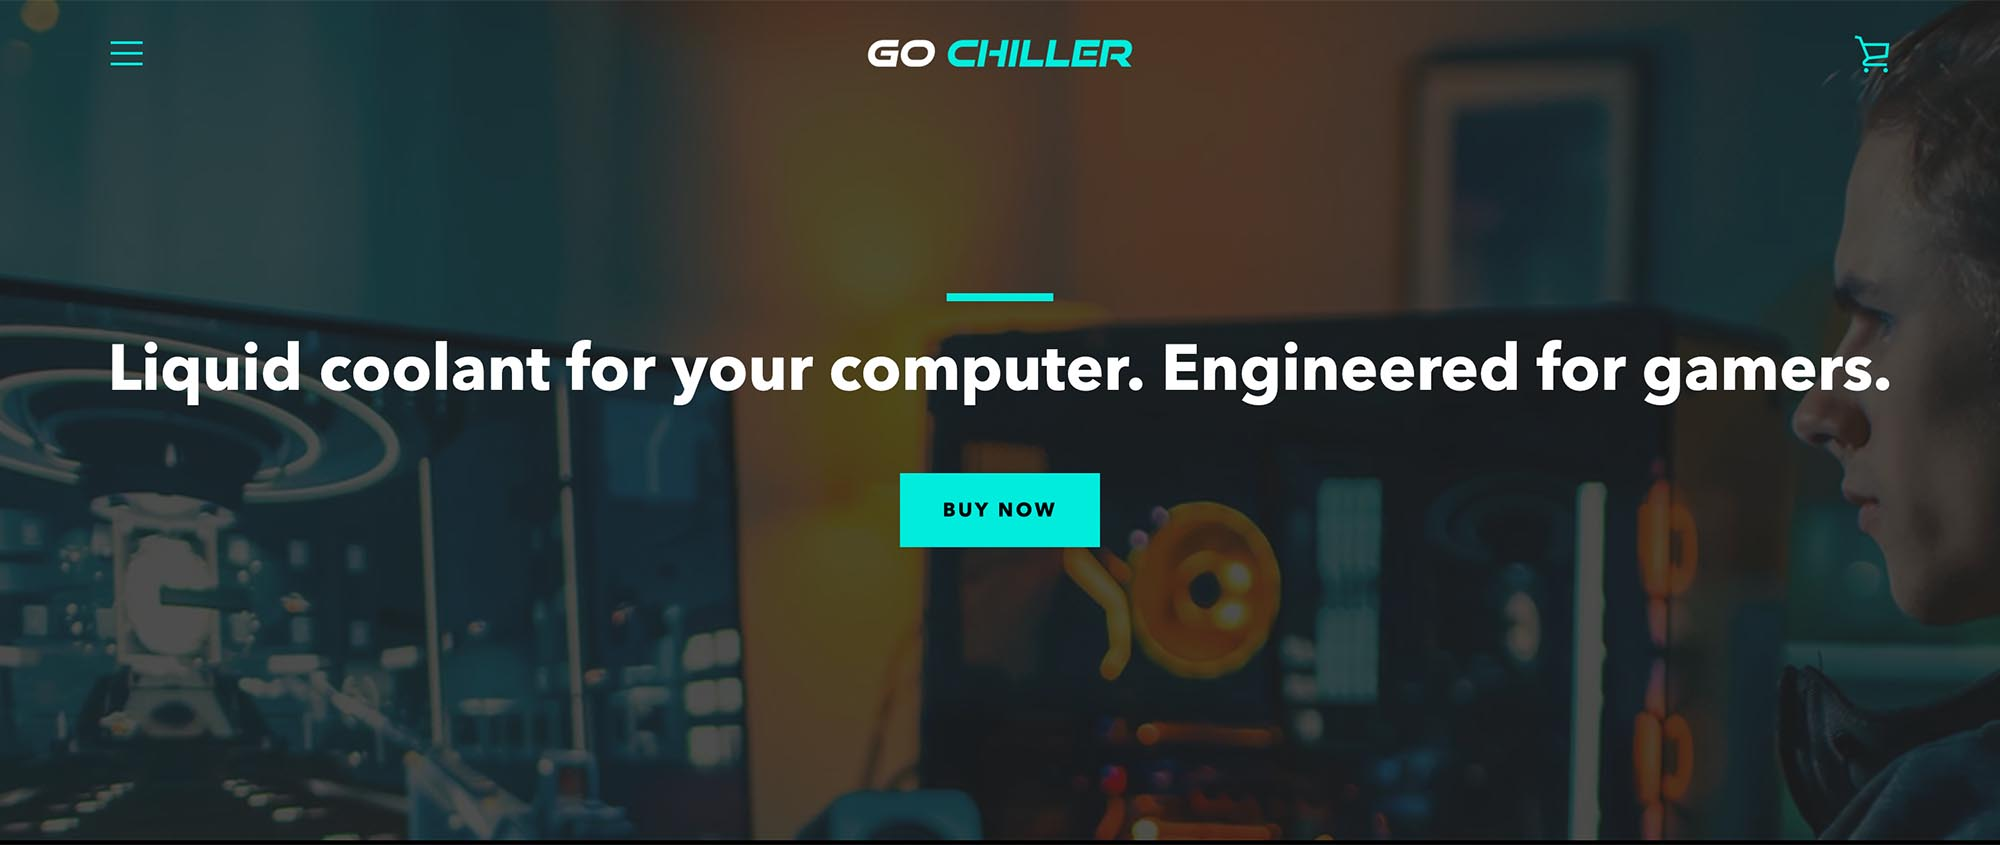 Go Chiller Liquid Coolant for your Computer Engineered for gamers